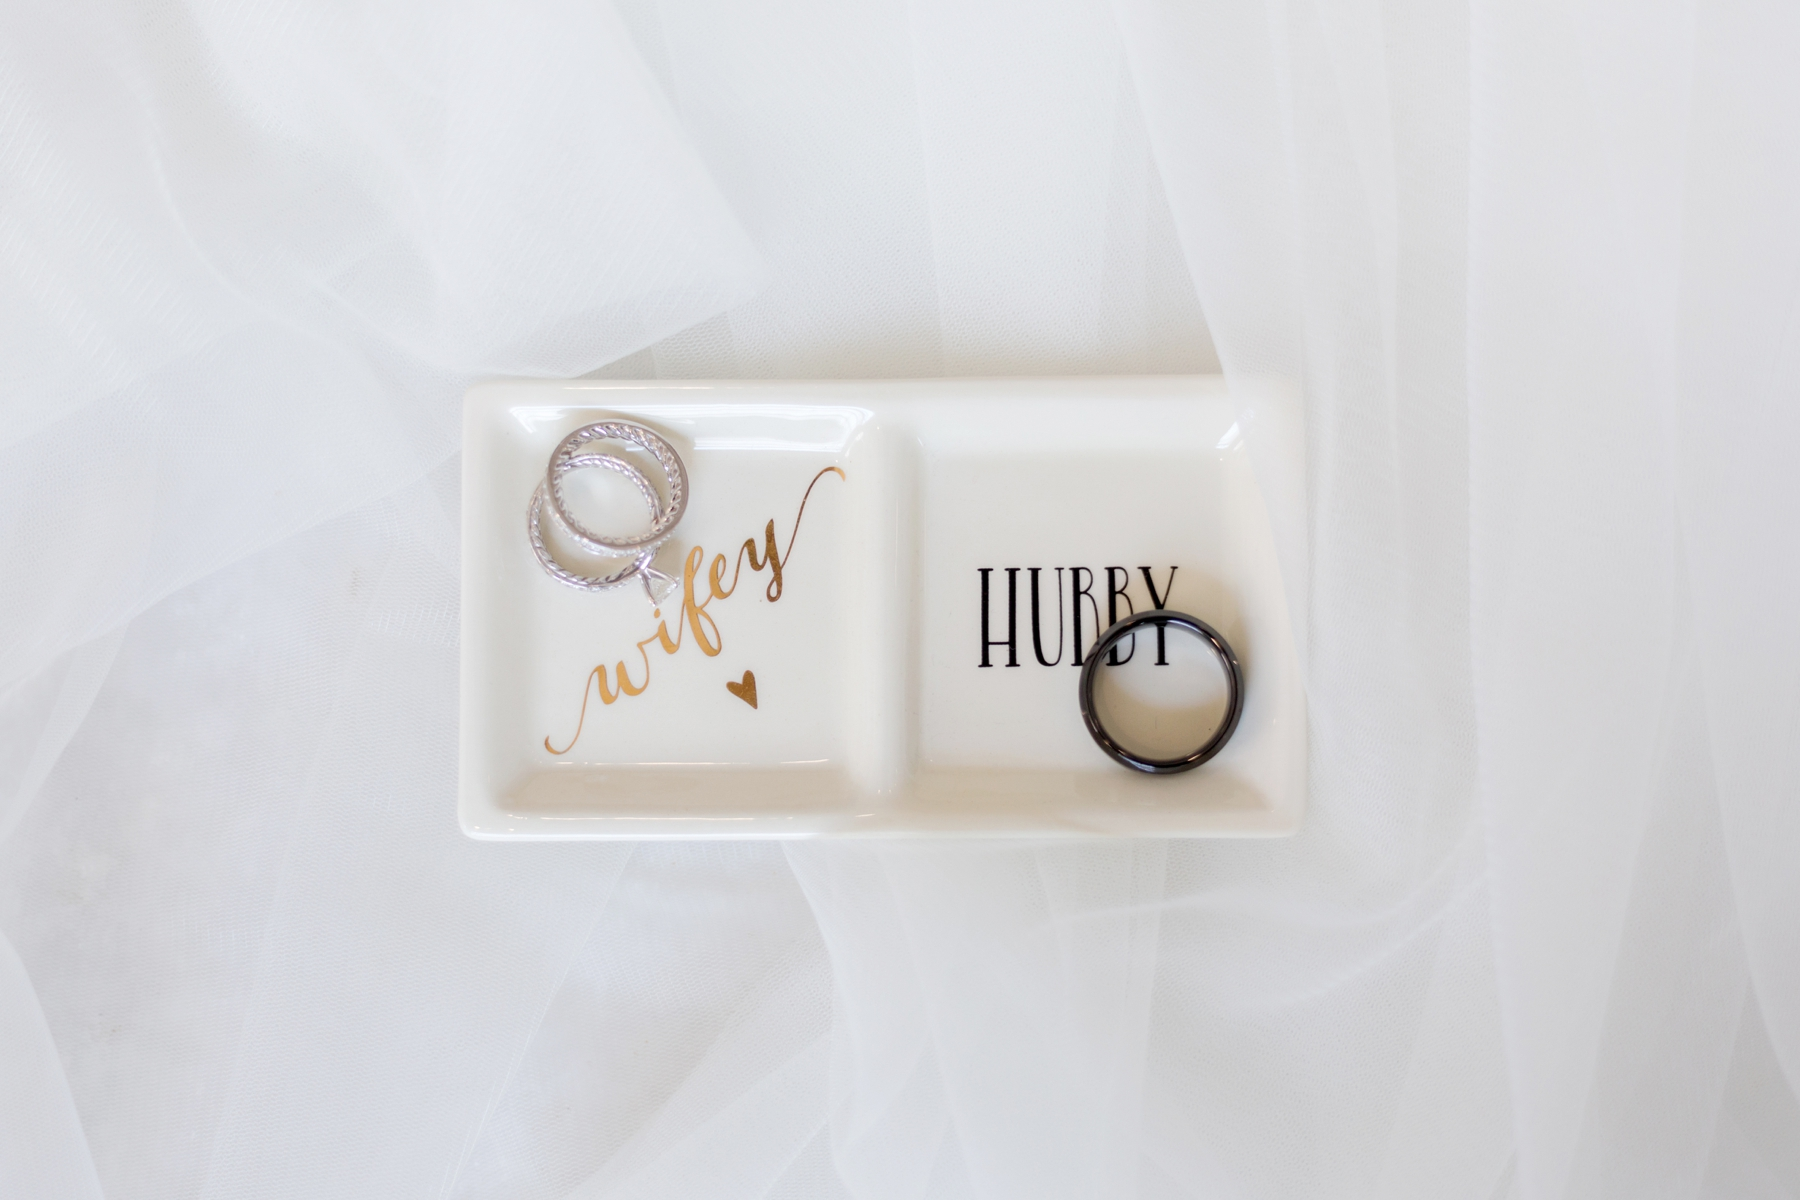 wifey hubby ring holder